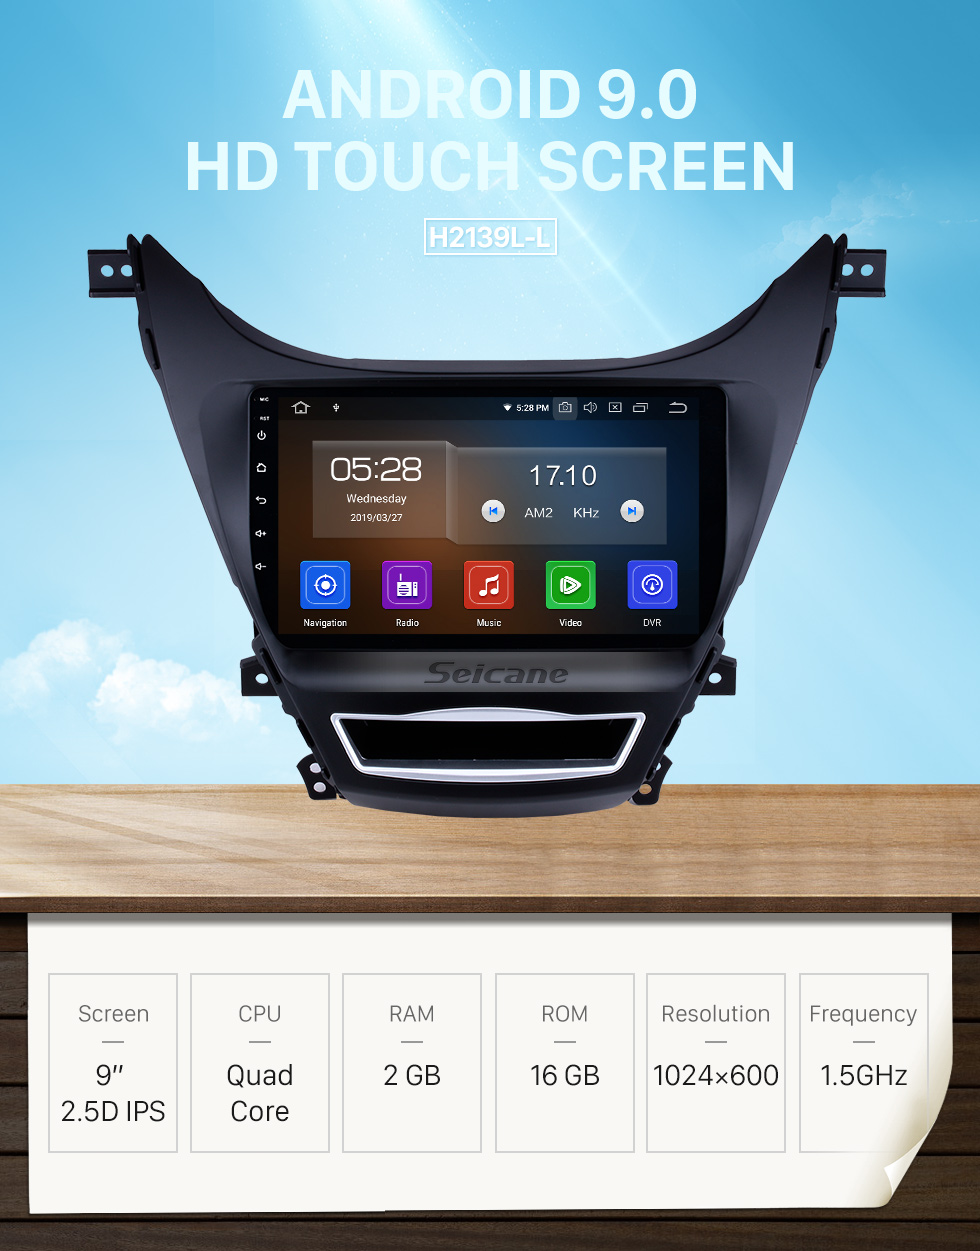 Seicane 9 inch Android 9.0 Radio GPS Car Navigation System for 2012 2013 Hyundai Elantra with Quad-core CPU Bluetooth Music 4G WiFi Mirror Link OBD2 Rearview Camera Steering Wheel Control AUX DVR 16G Flash